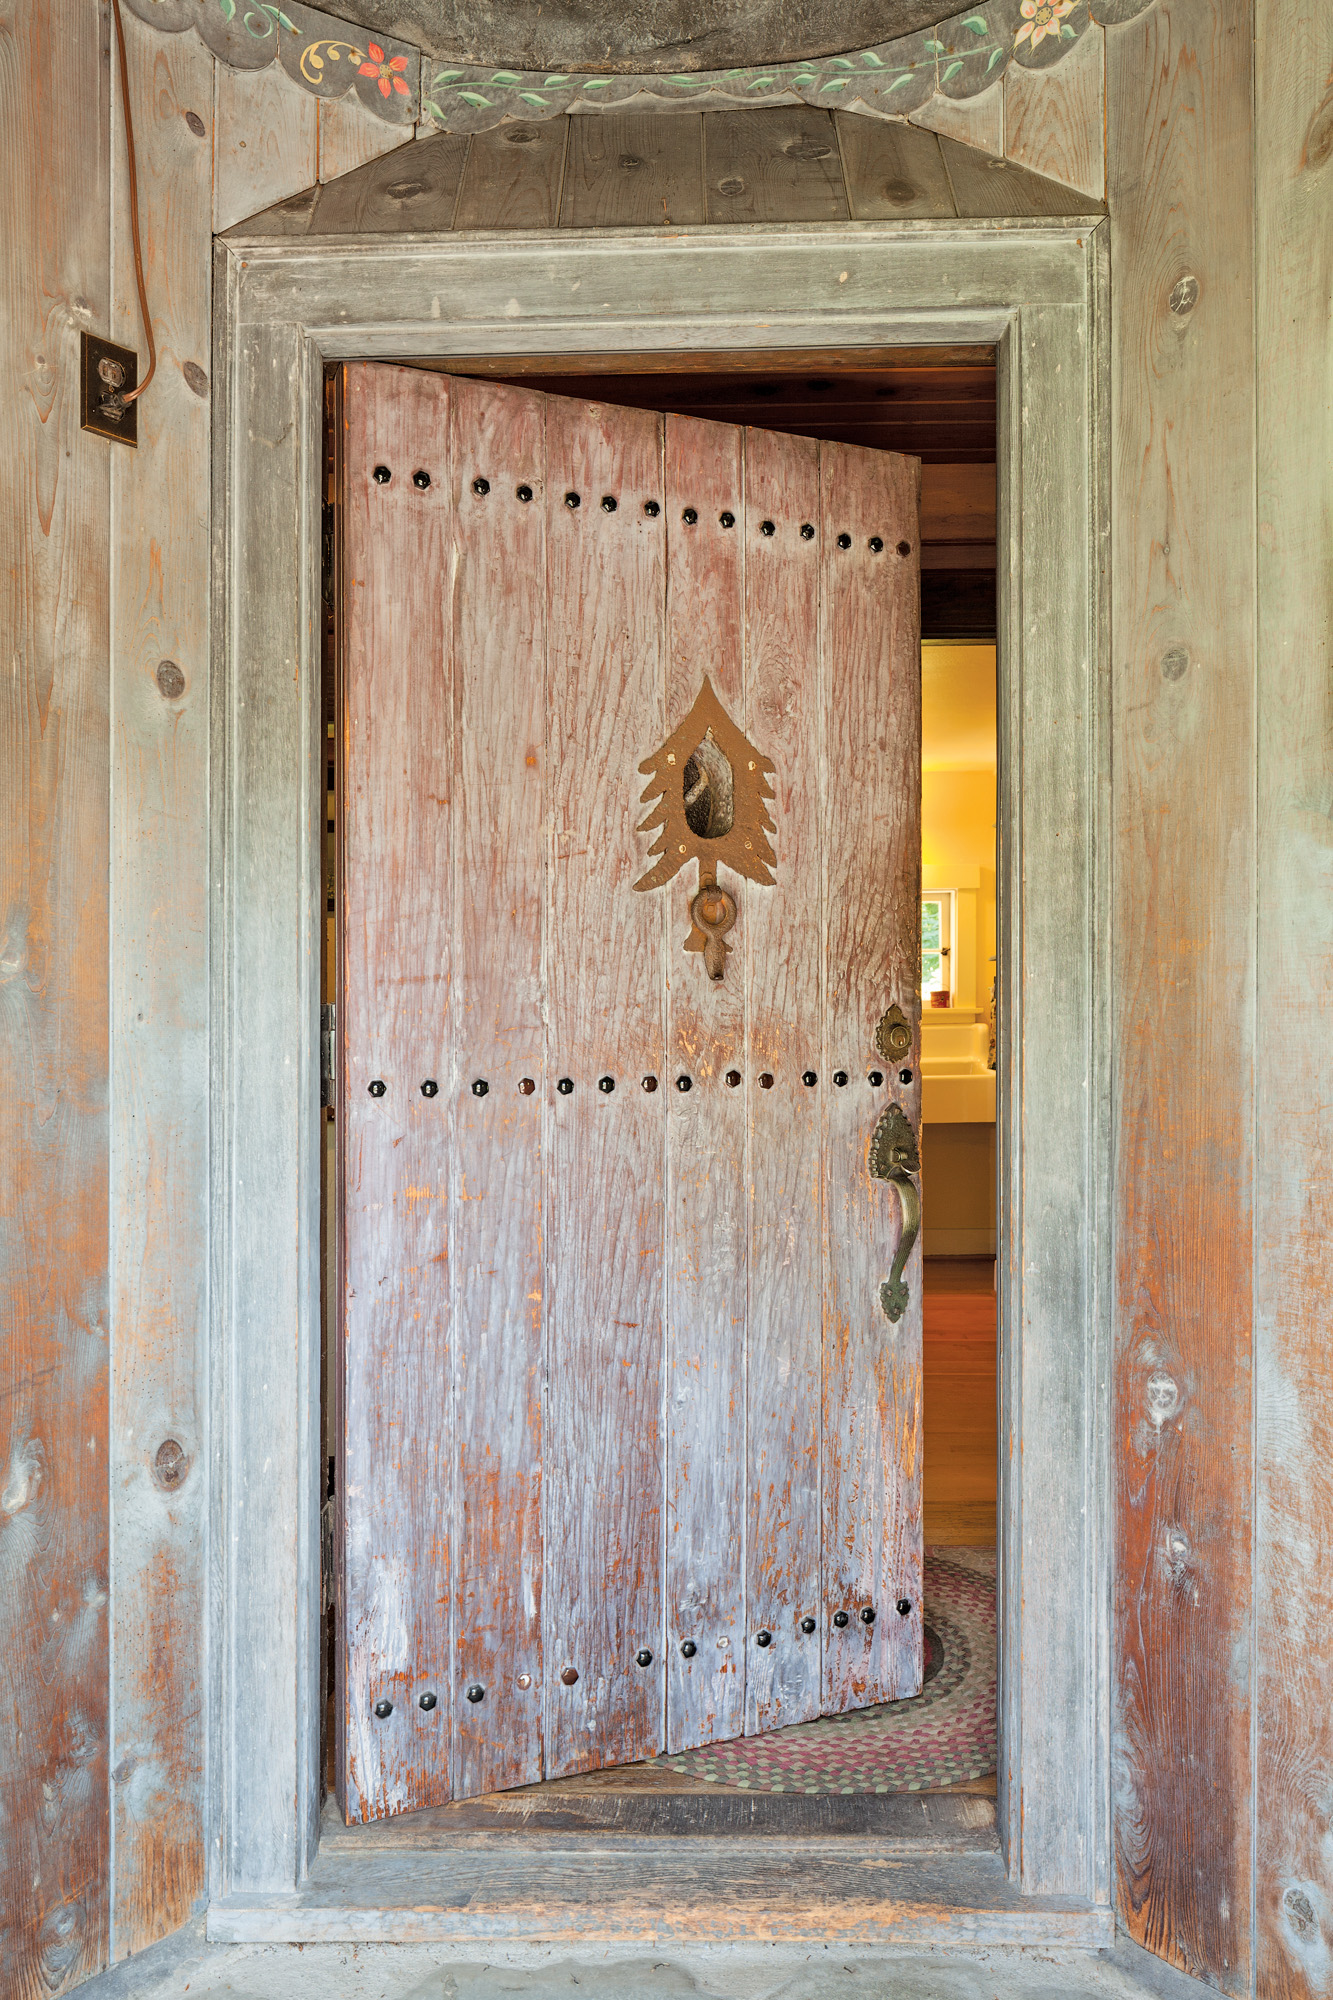 The carved cedar front door has decorative bolts and a fir tree peep-hole and knocker.